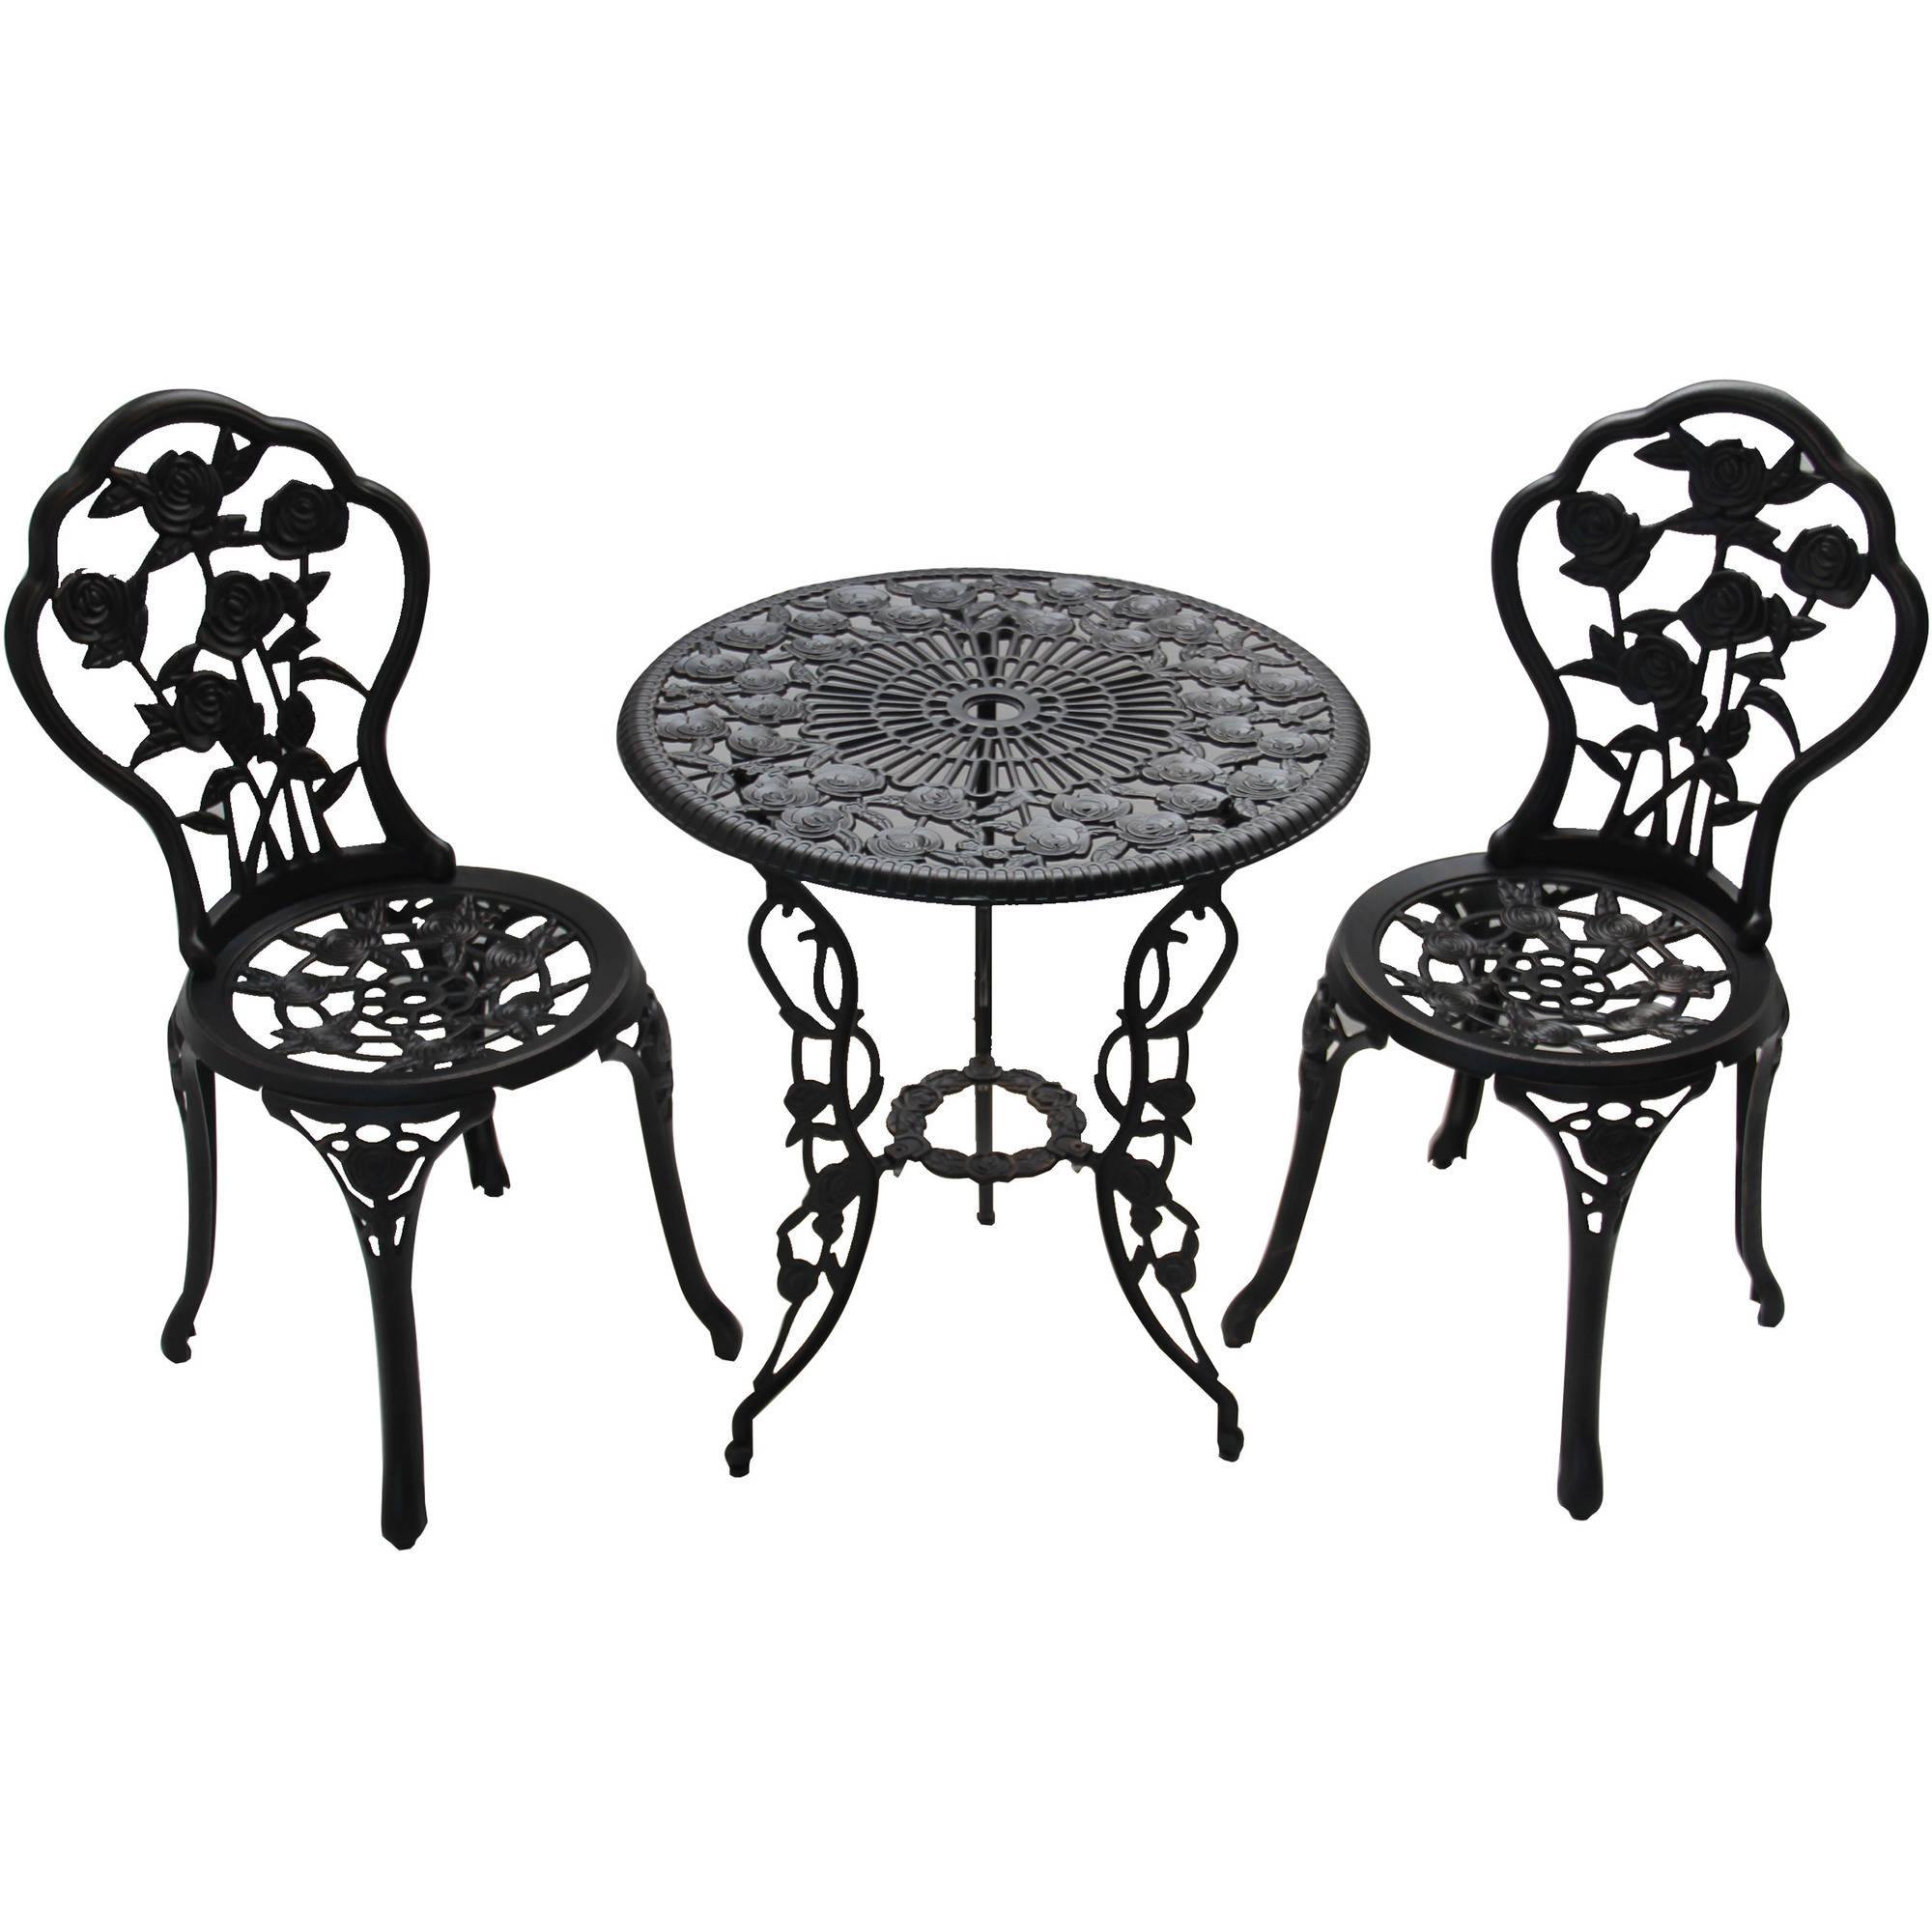 outdoor cafe table and chairs. Outdoor Bistro Sets. Under $100. $100 · - $250 Cafe Table And Chairs